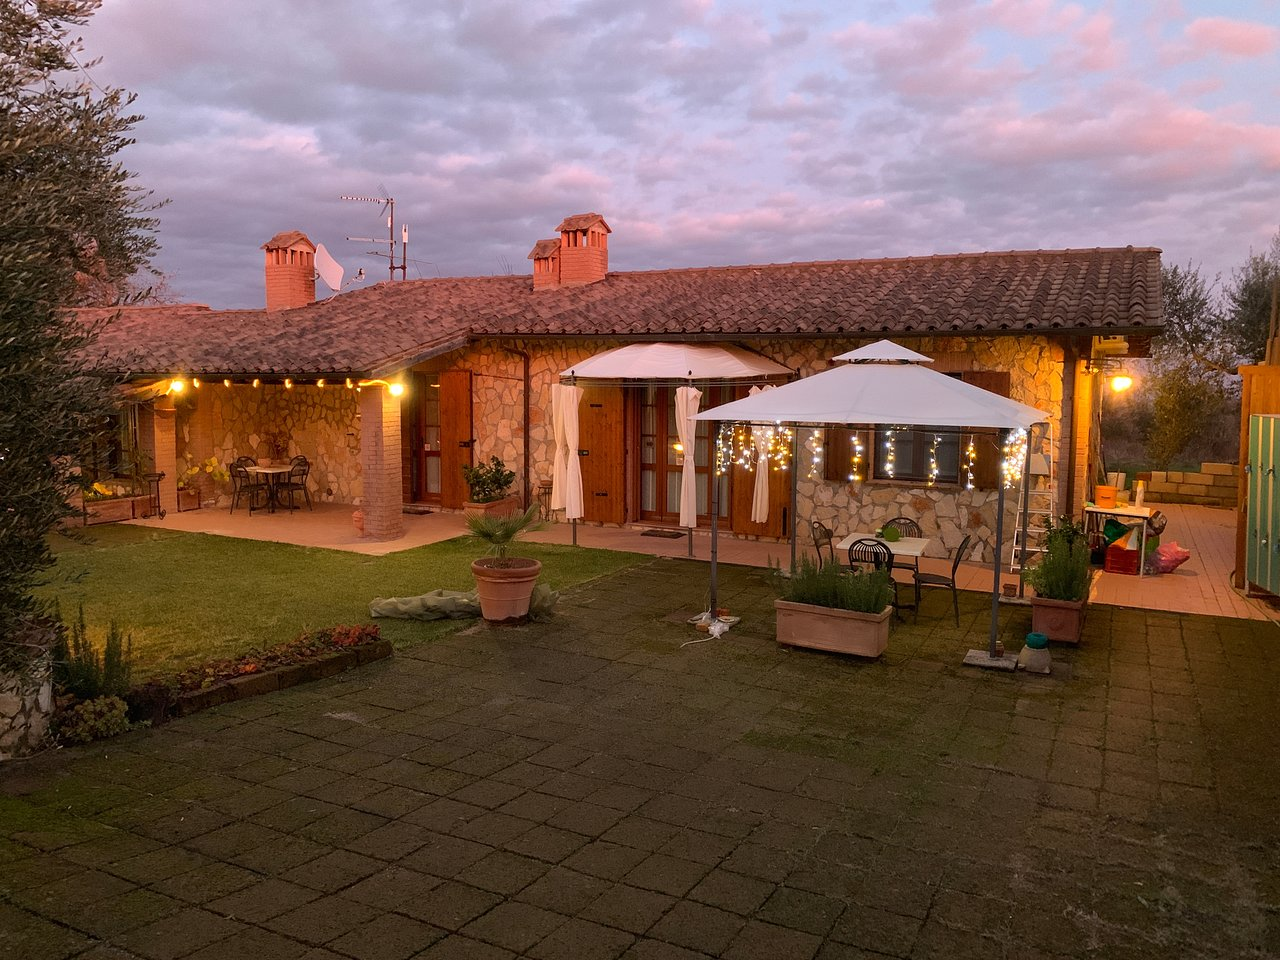 Cucina Enoteca Villa De La Valle Agriturismo Cantagalli Updated 2019 Prices Condominium Reviews